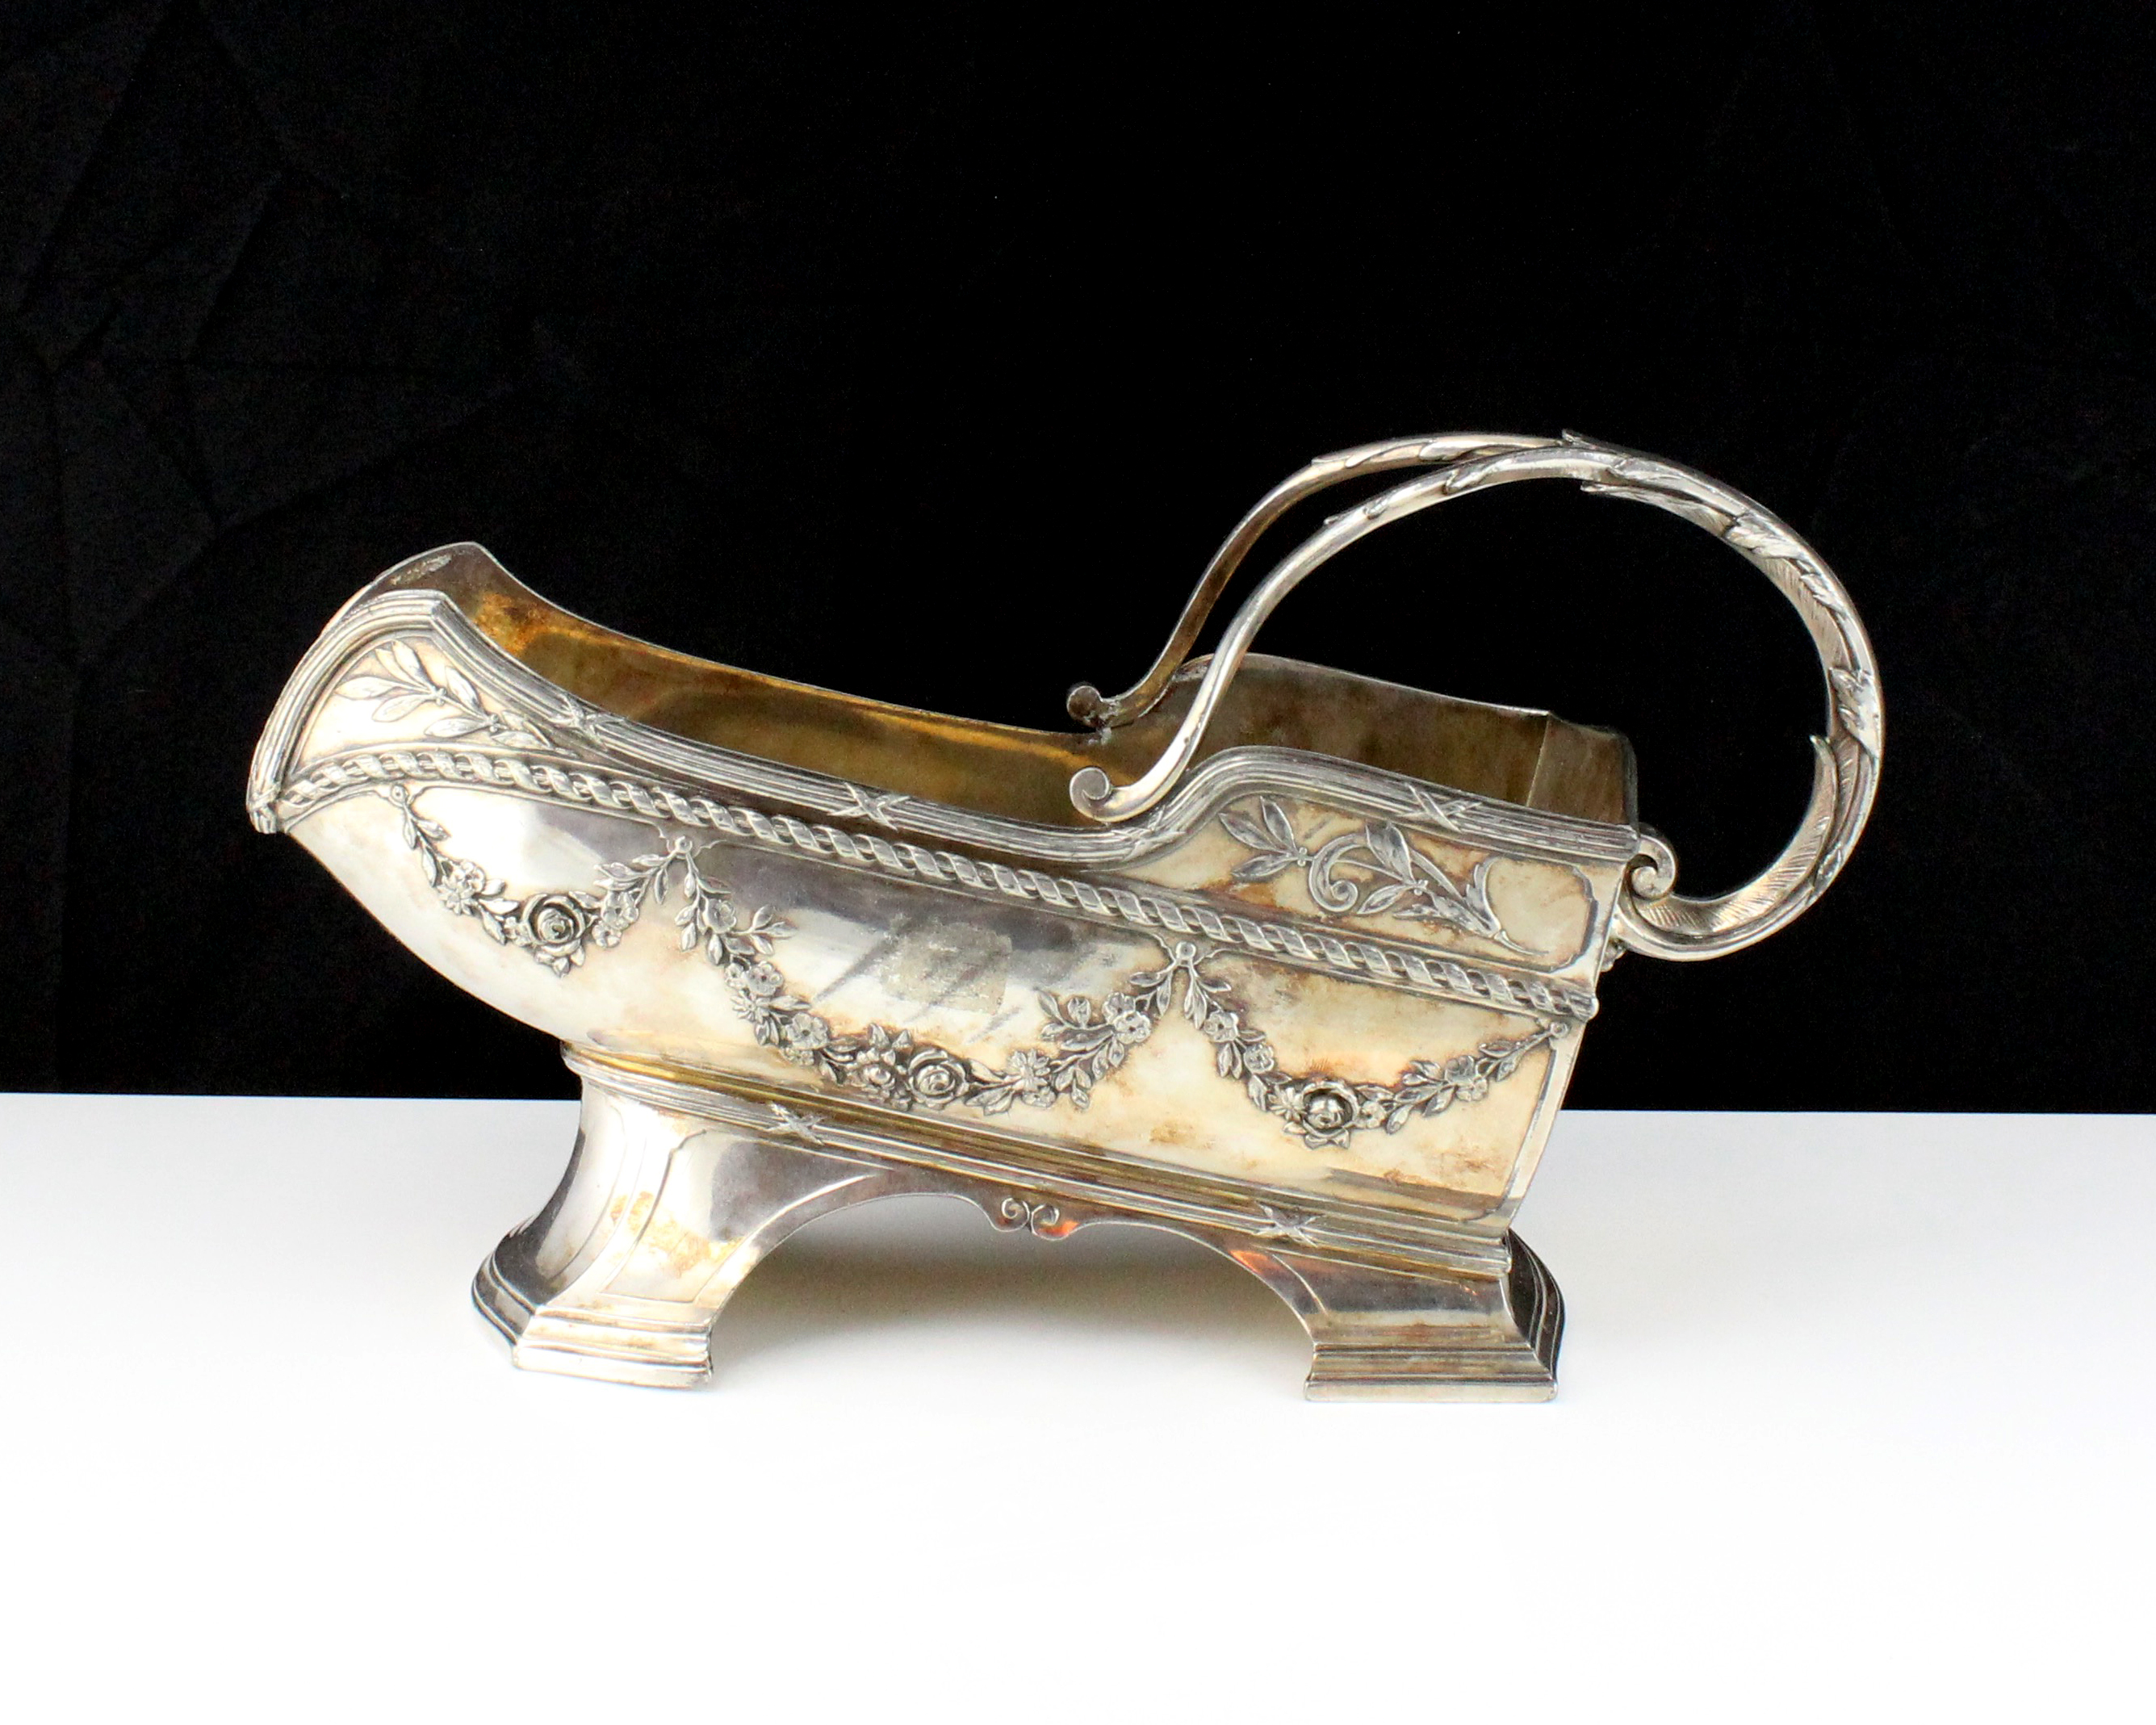 A French silver plated wine bottle holder, decorated with bound reeds and swags / garlands, with